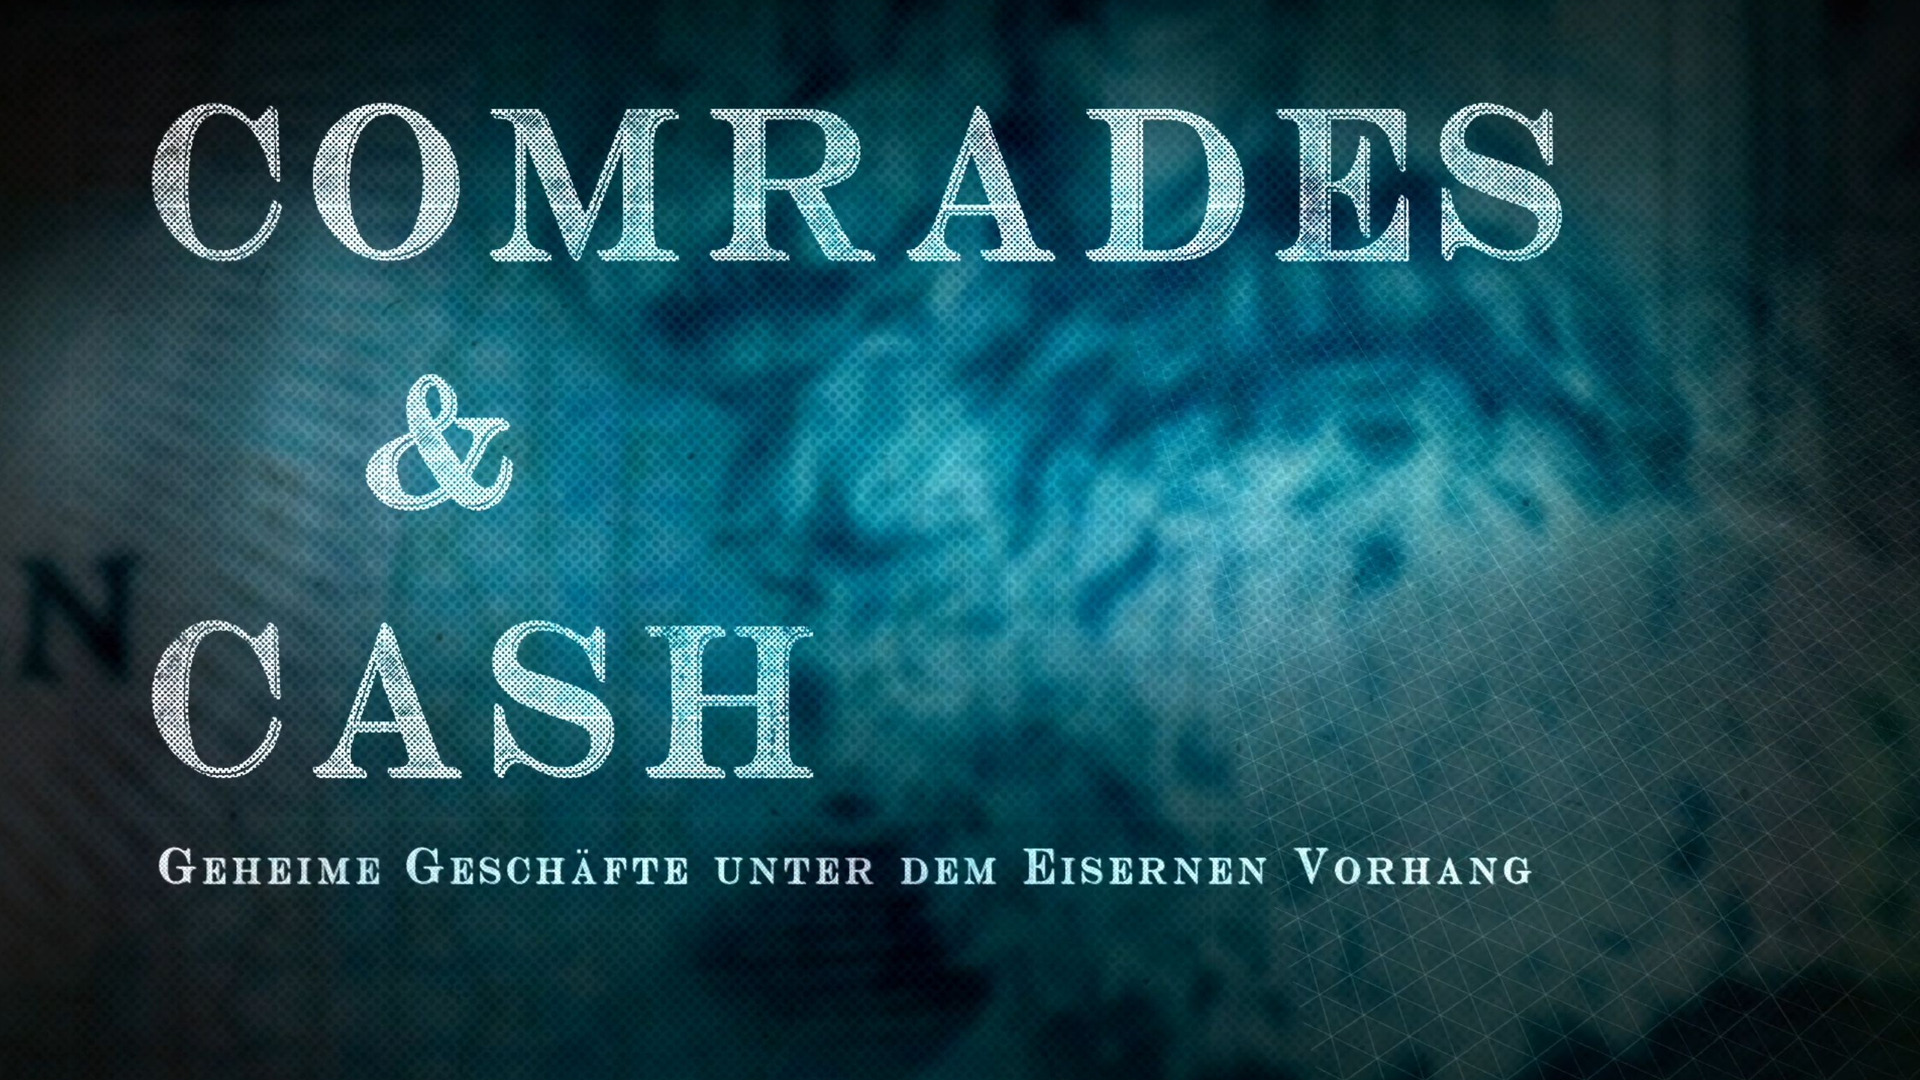 Германия 83/86/89 — s02 special-1 — Comrades & Cash - How Money Found Its Way Through the Iron Curtain